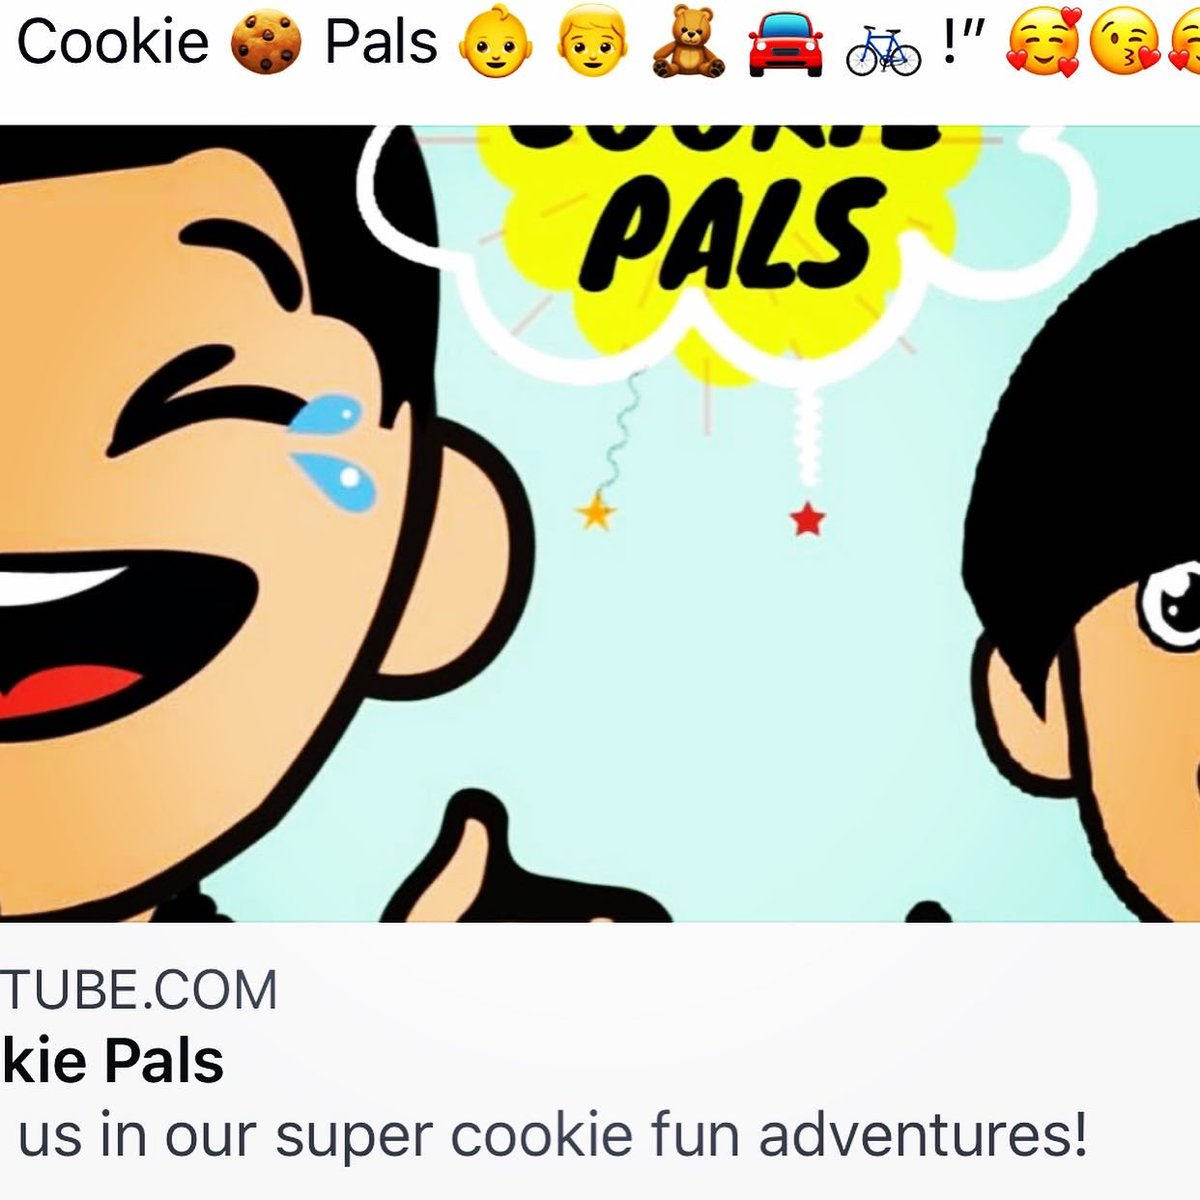 """""""My Cookie 🍪 Pals 👶 👦🧸 🚘 🚲!""""🥰😘🥰 #cookies #grandchildren #play #fun #baby #funvideos #park #toys #toddler #toddlerlife #childrengames #tropicallife #gameplays #pals #puertoricanbabies #school #infant #creativity #magical #hype #fantasy #playground"""